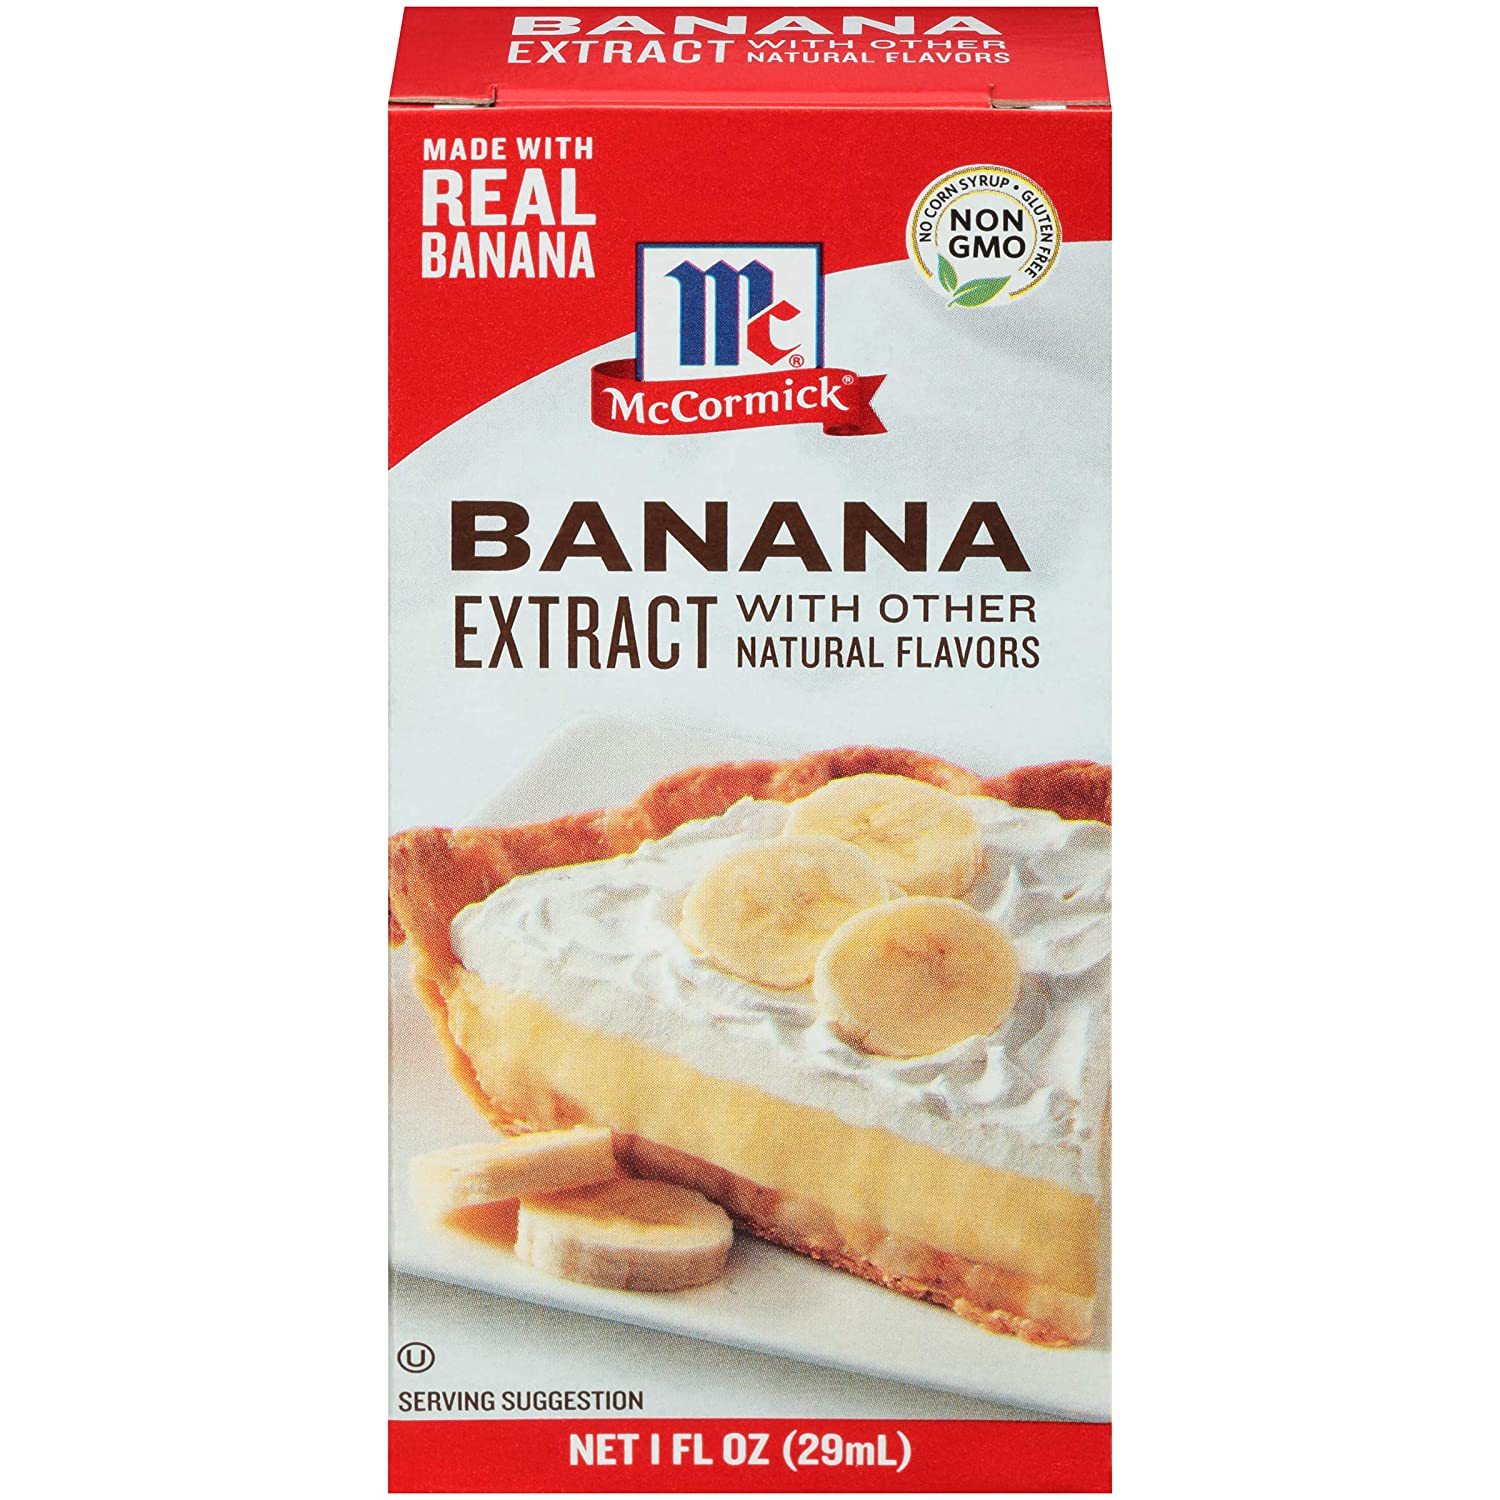 McCormick Banana Extract, 1 fl oz